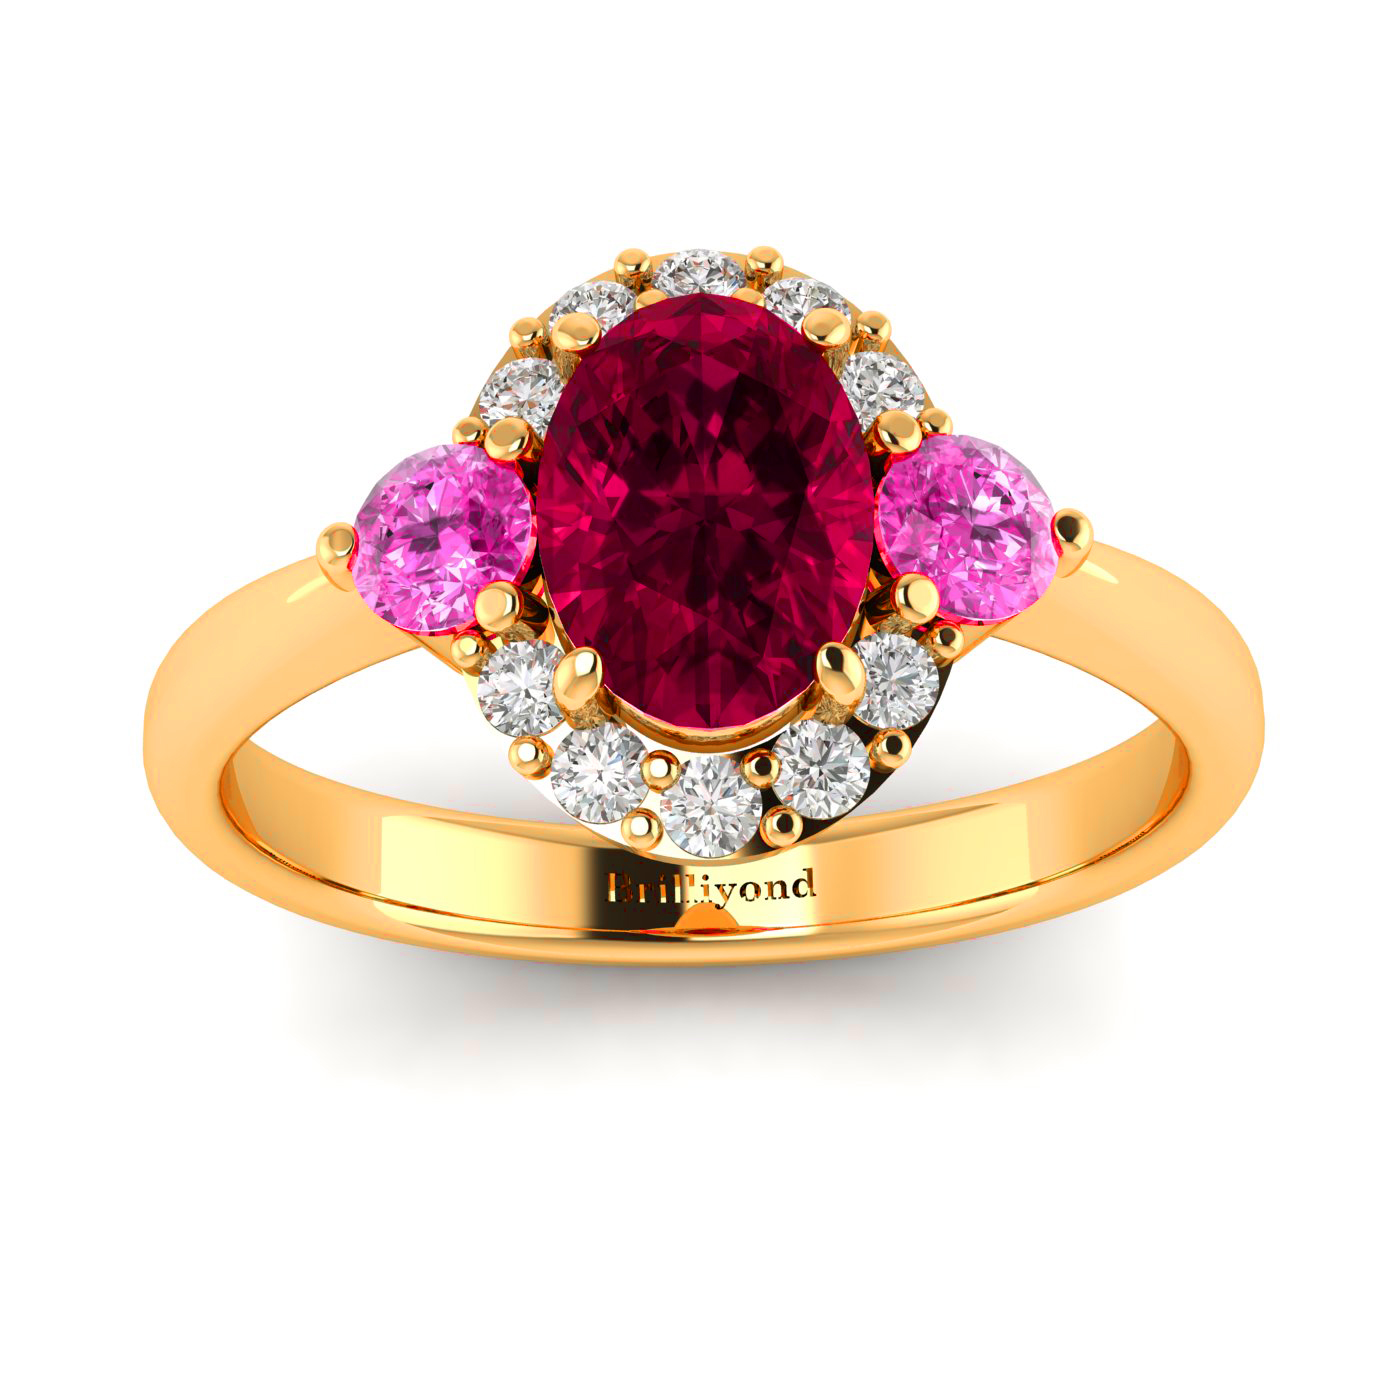 Oval Ruby Gem with Pink Sapphire Accents on 18k Yellow Gold Band